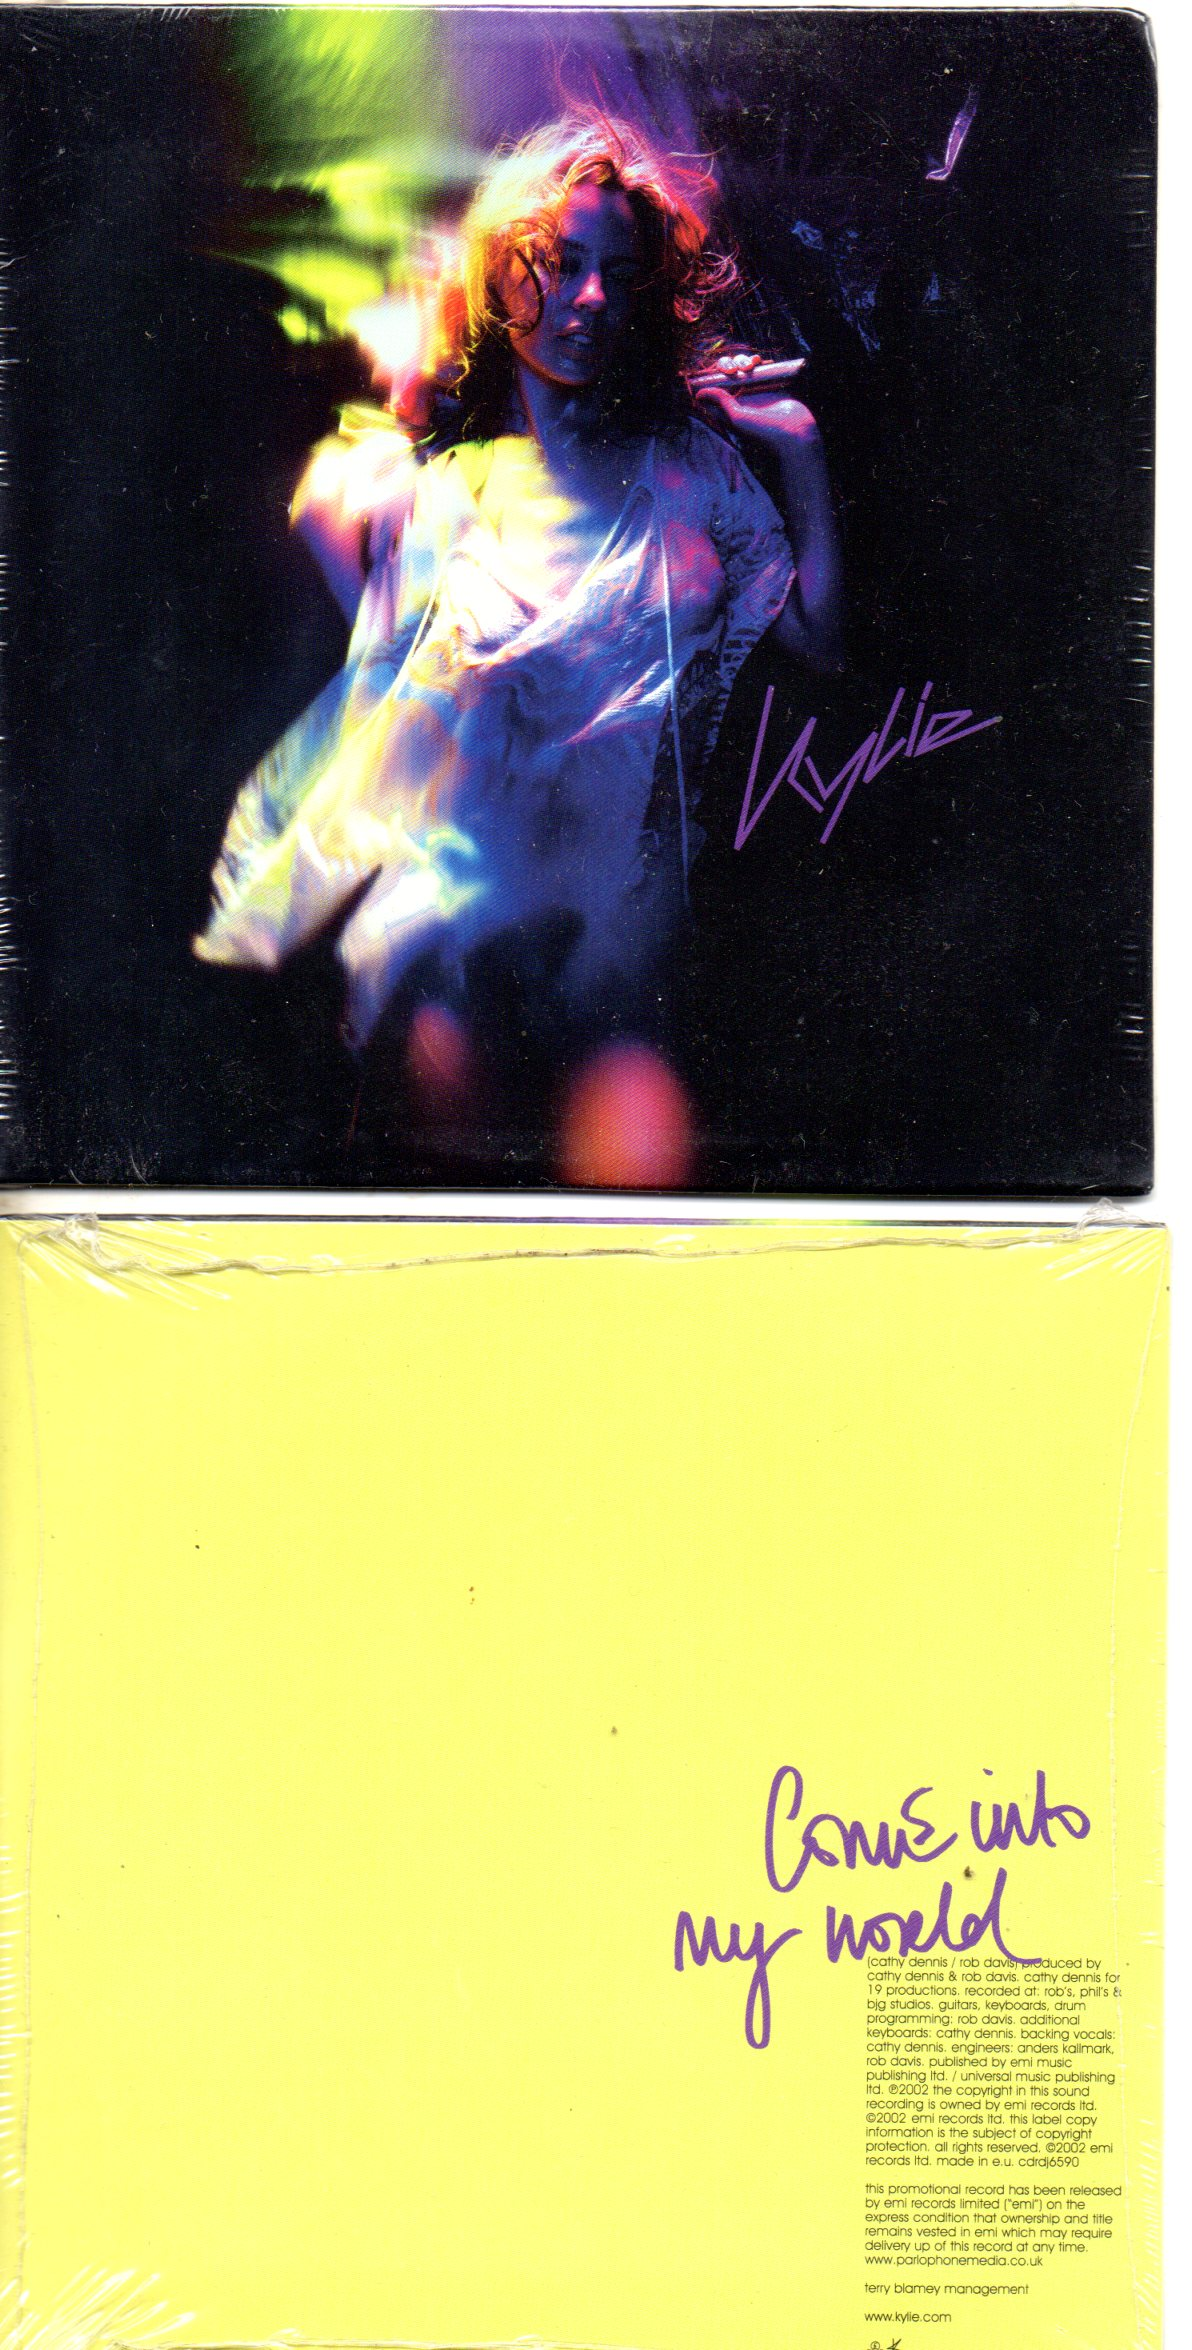 Kylie MINOGUE - Come Into My World Promo 1 Track Card Sleeve